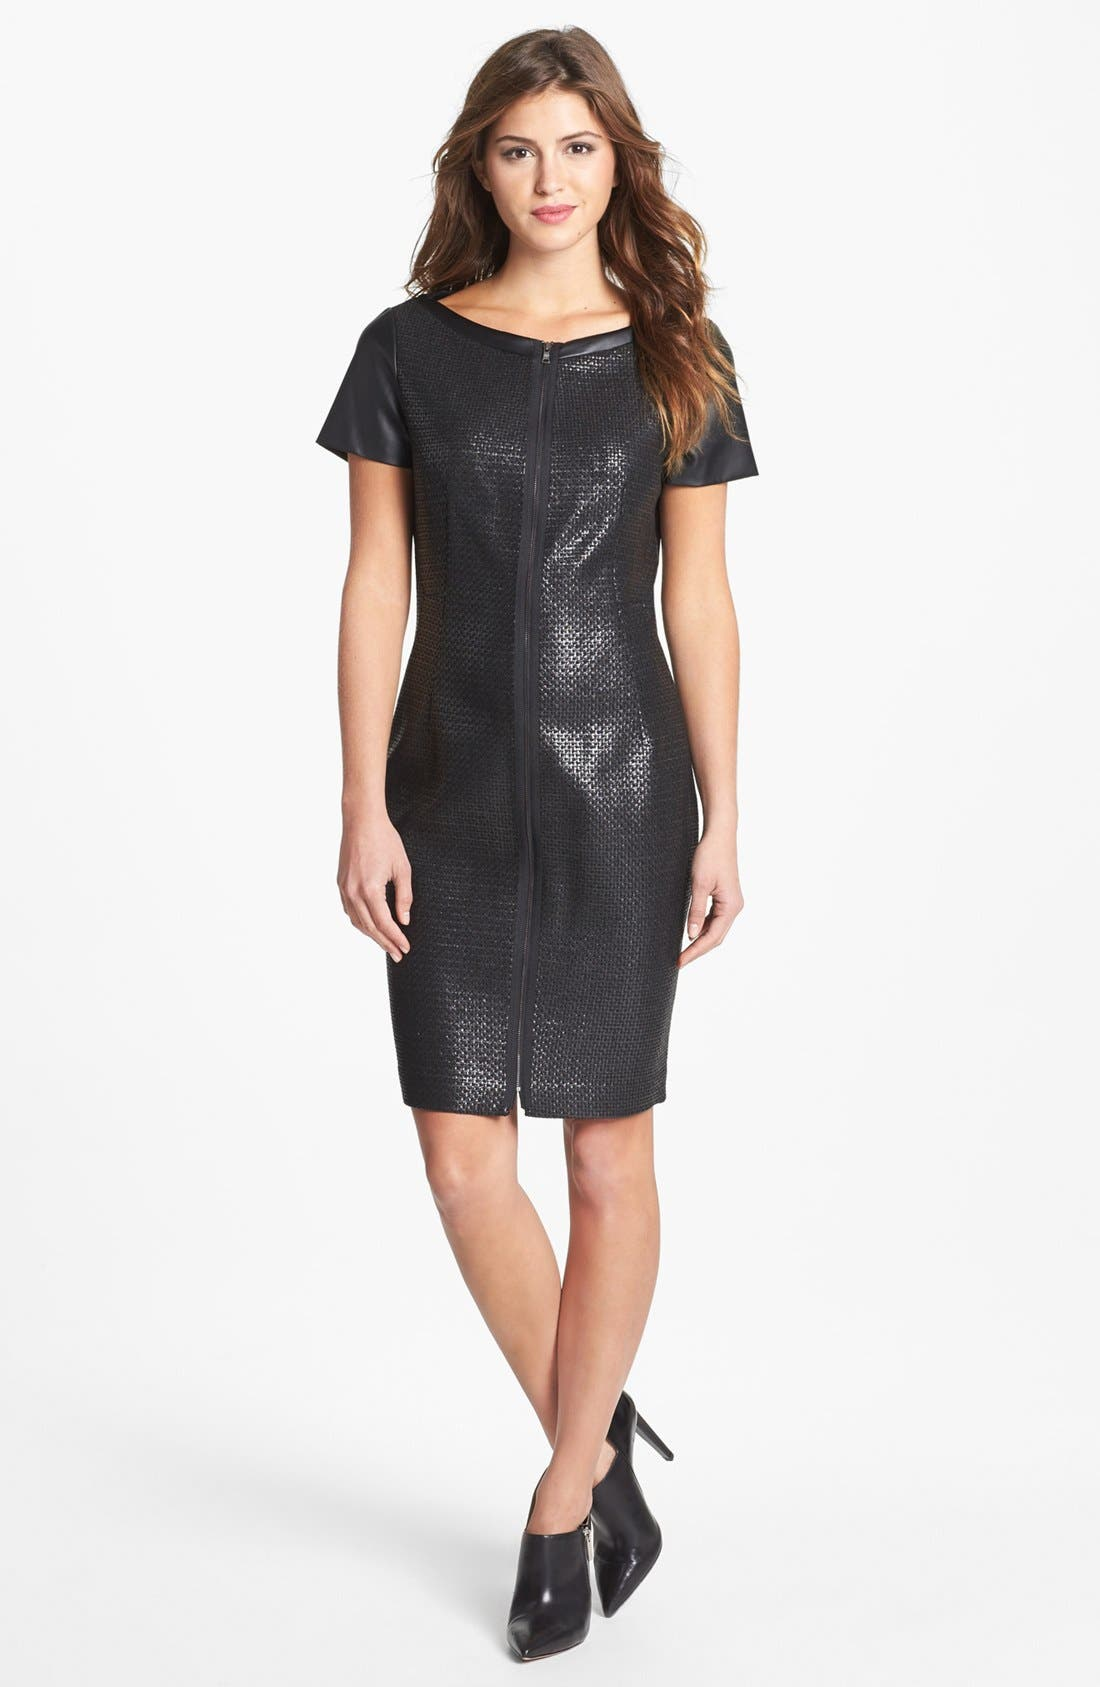 Alternate Image 1 Selected - T Tahari 'Lalita' Textured Front Faux Leather Dress